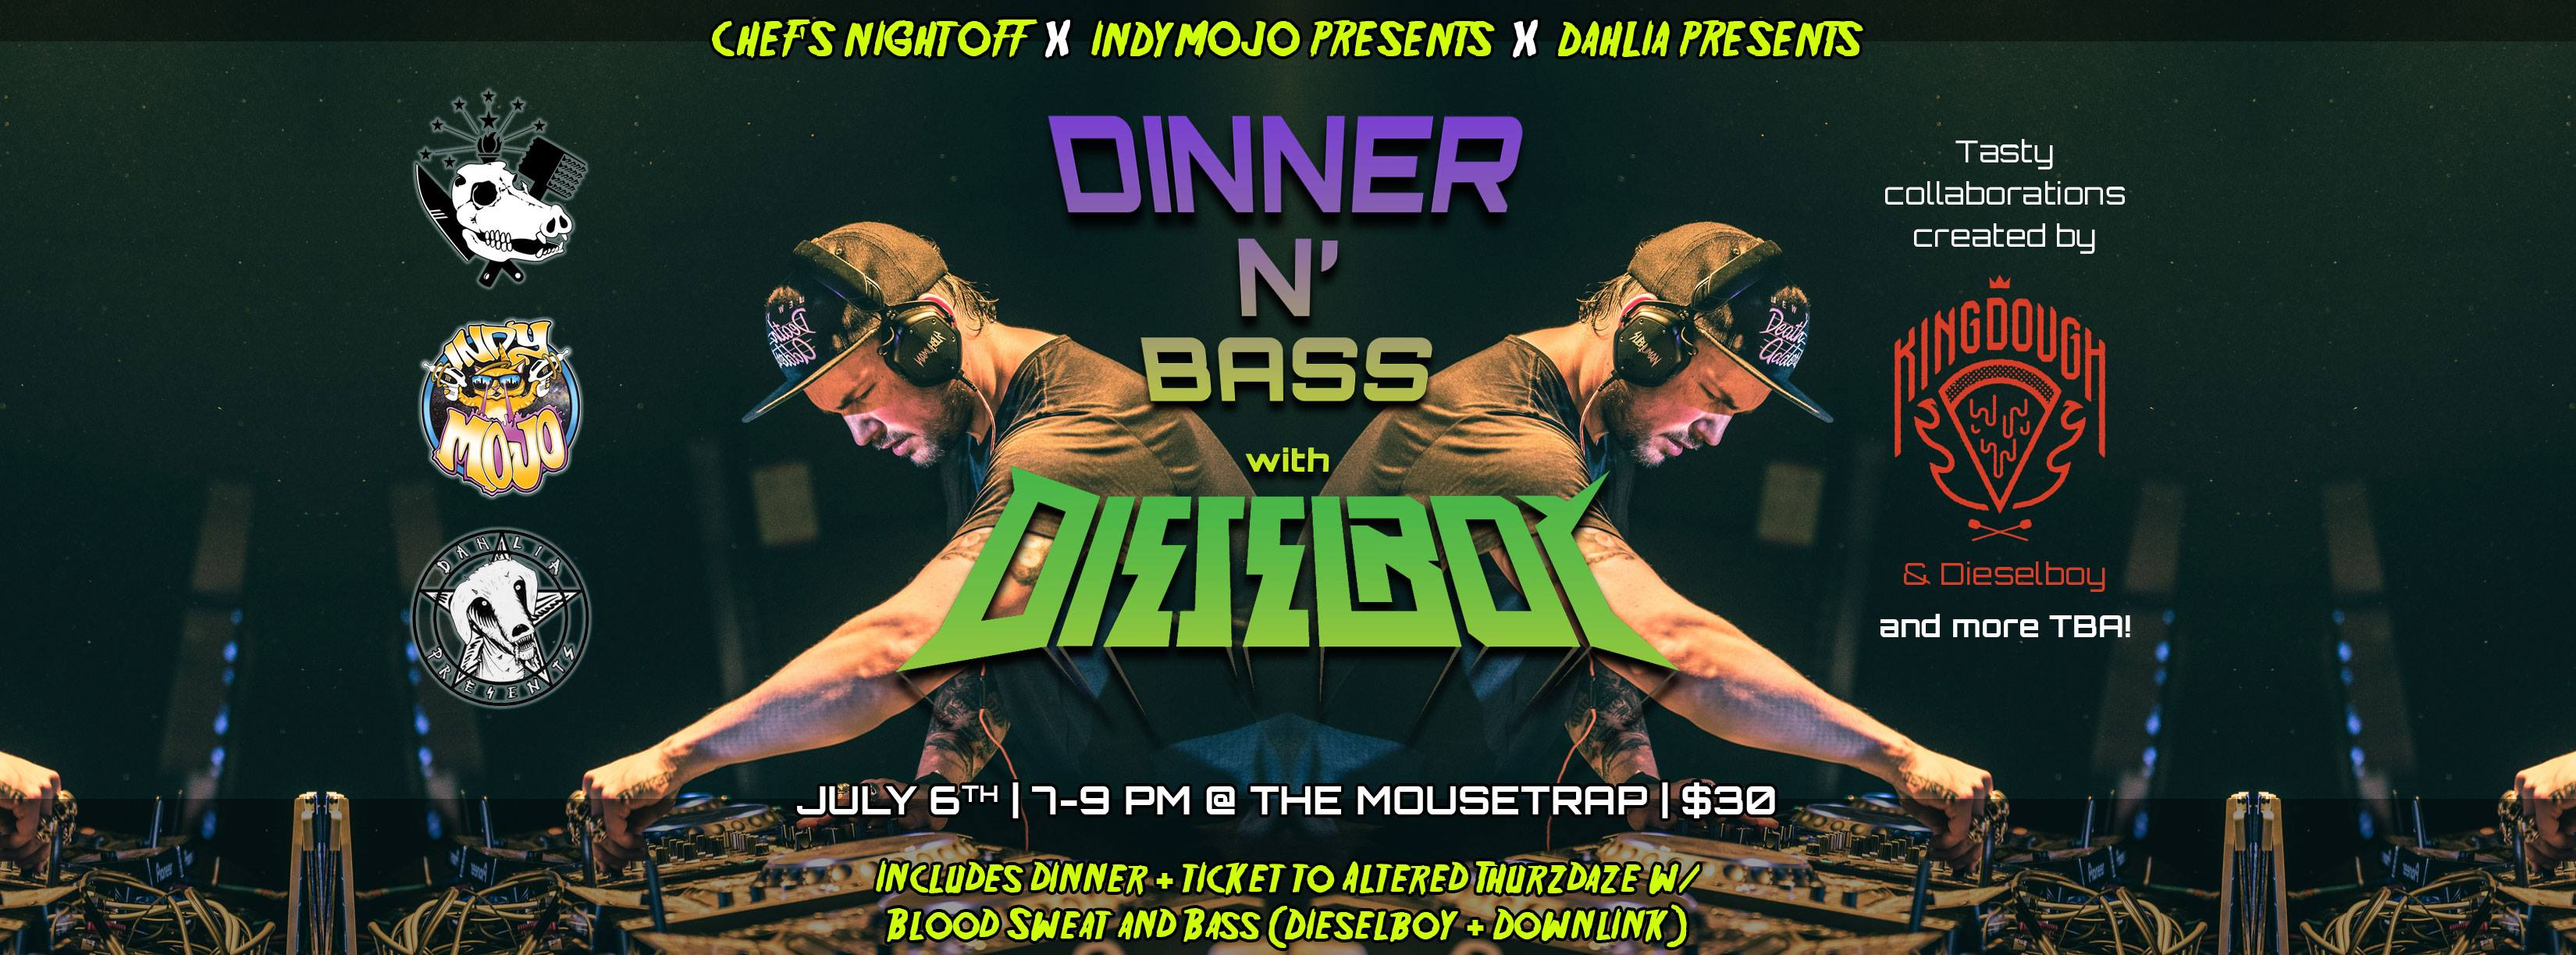 Dinner n Bass with Dieselboy - Thursday, July 6th